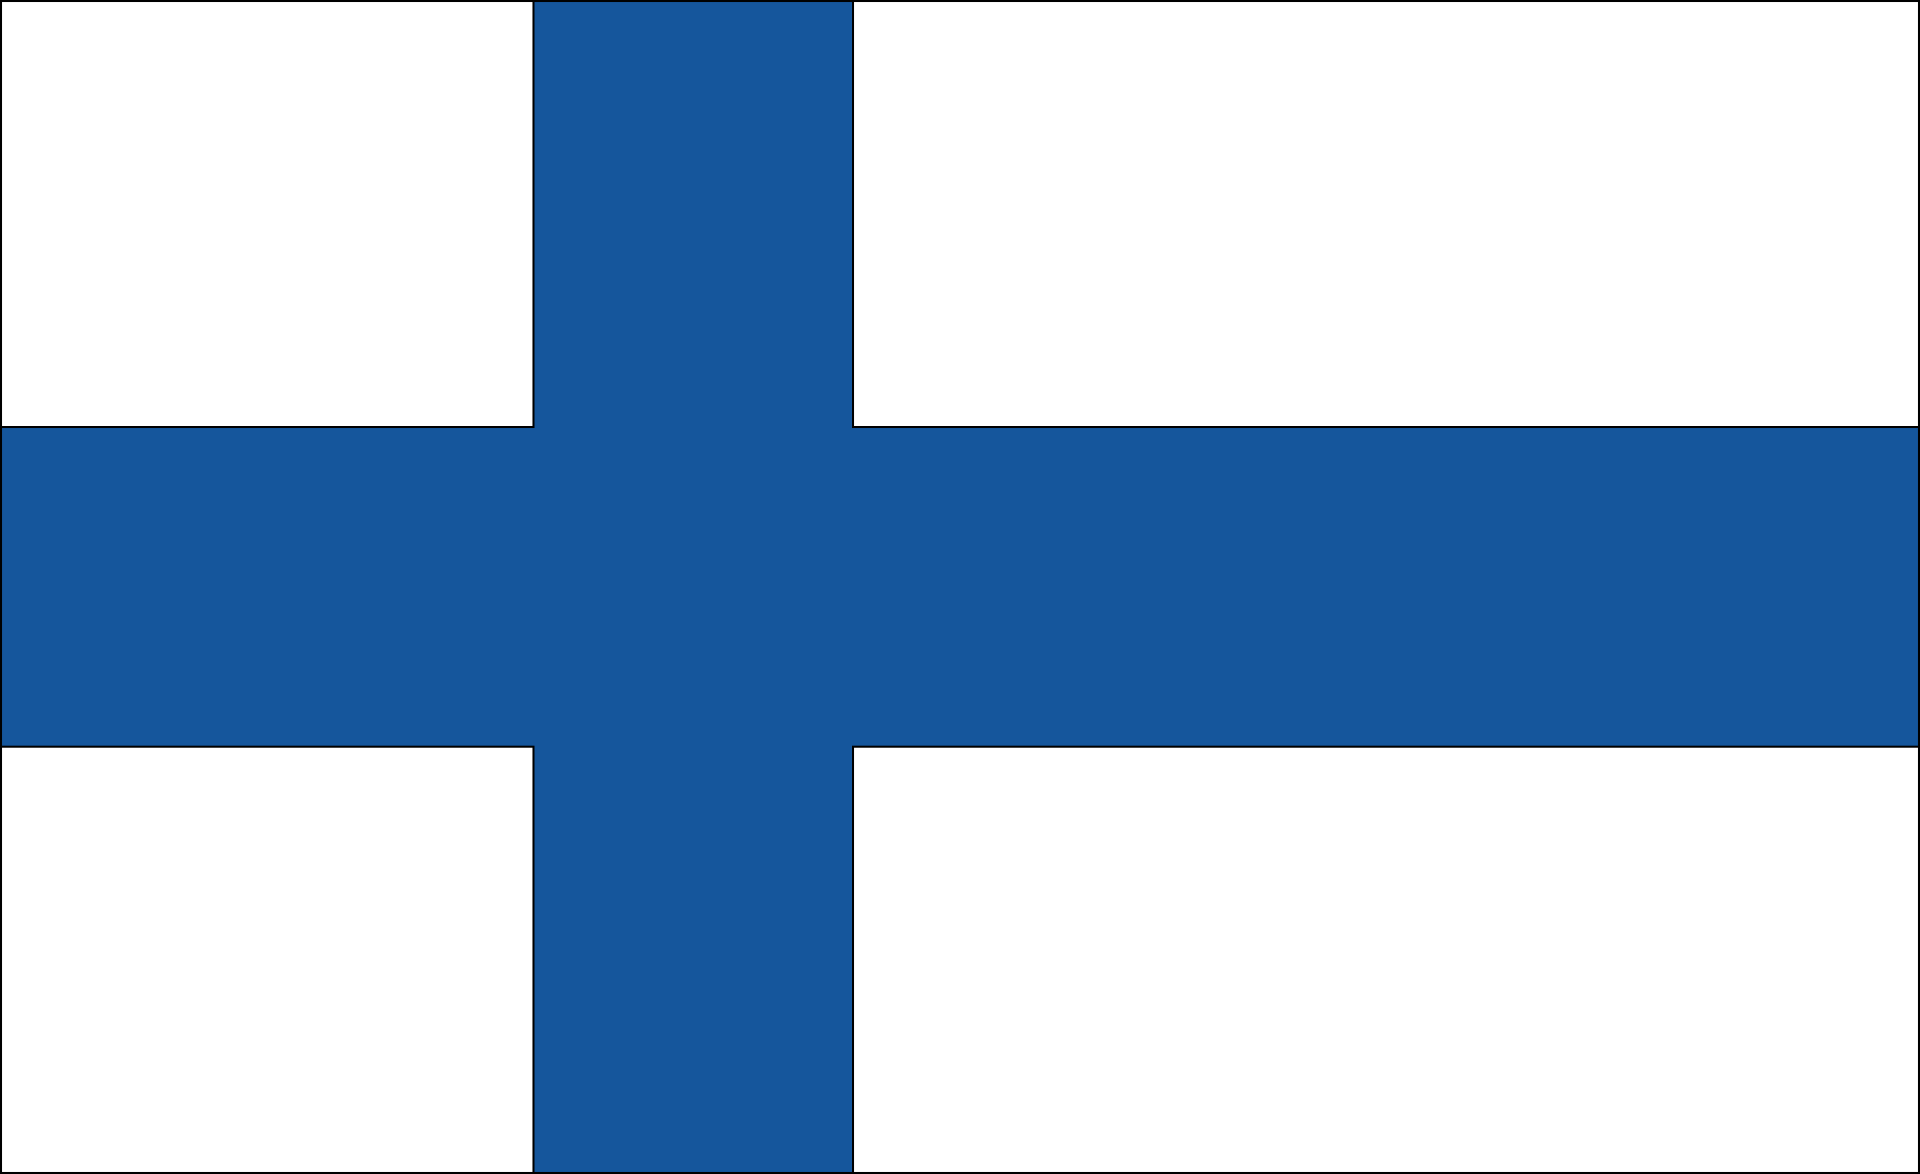 The Flag Of Finland Also Called Siniristilippu Dates From The Beginning Of The 20th Century On A White Background I Finland Blue Nordic International Flags